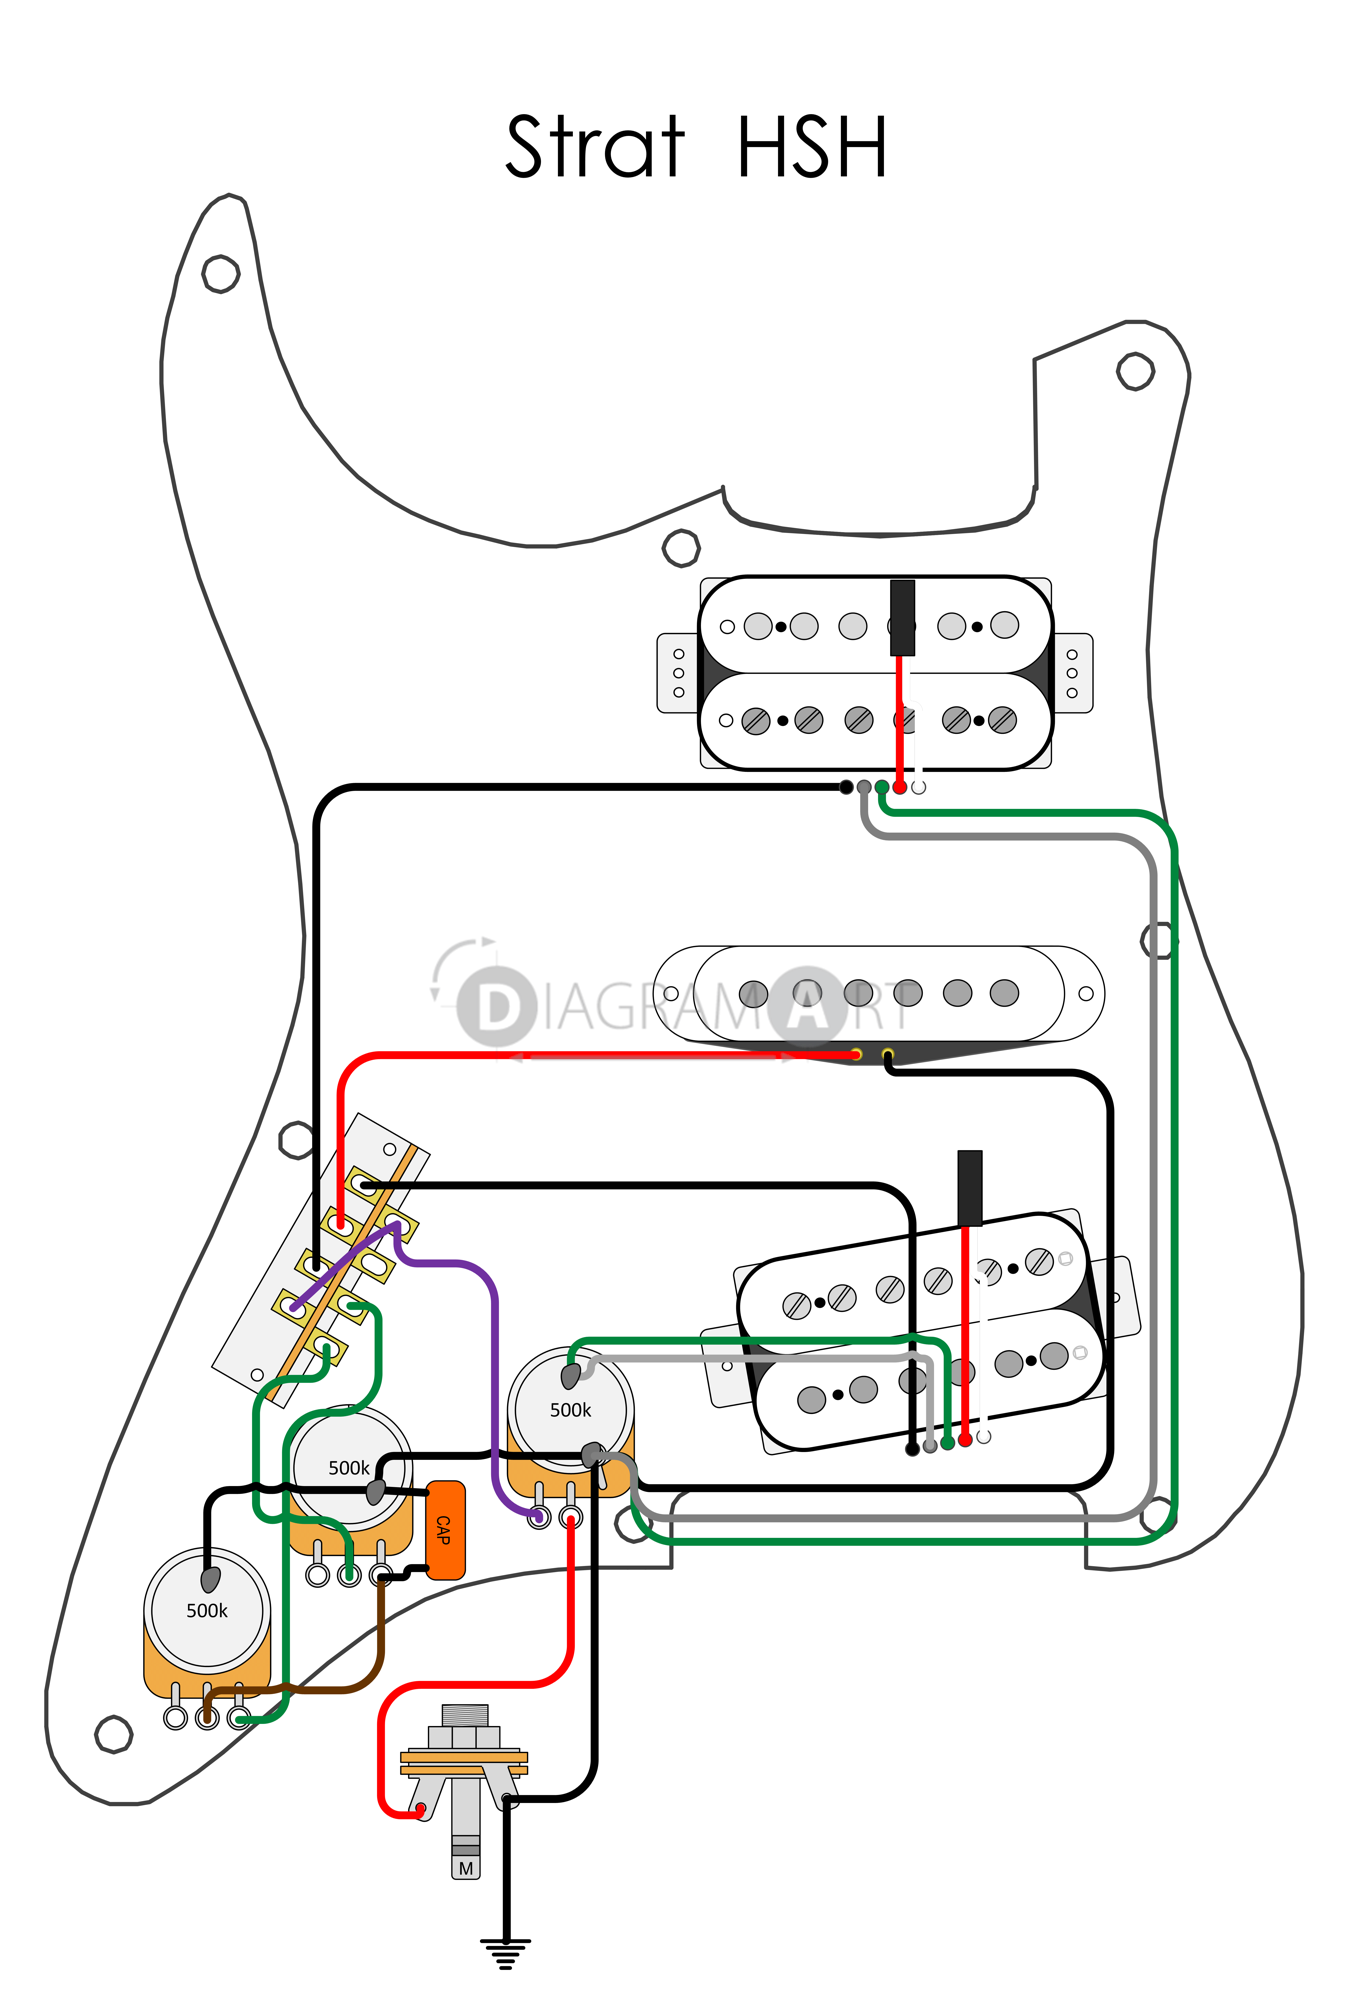 download_ef870d50 d966 419d a0f4 22998adecec6?v=1476390216 electric guitar wiring strat hsh [electric circuit] diagramart strat hsh wiring diagram at readyjetset.co